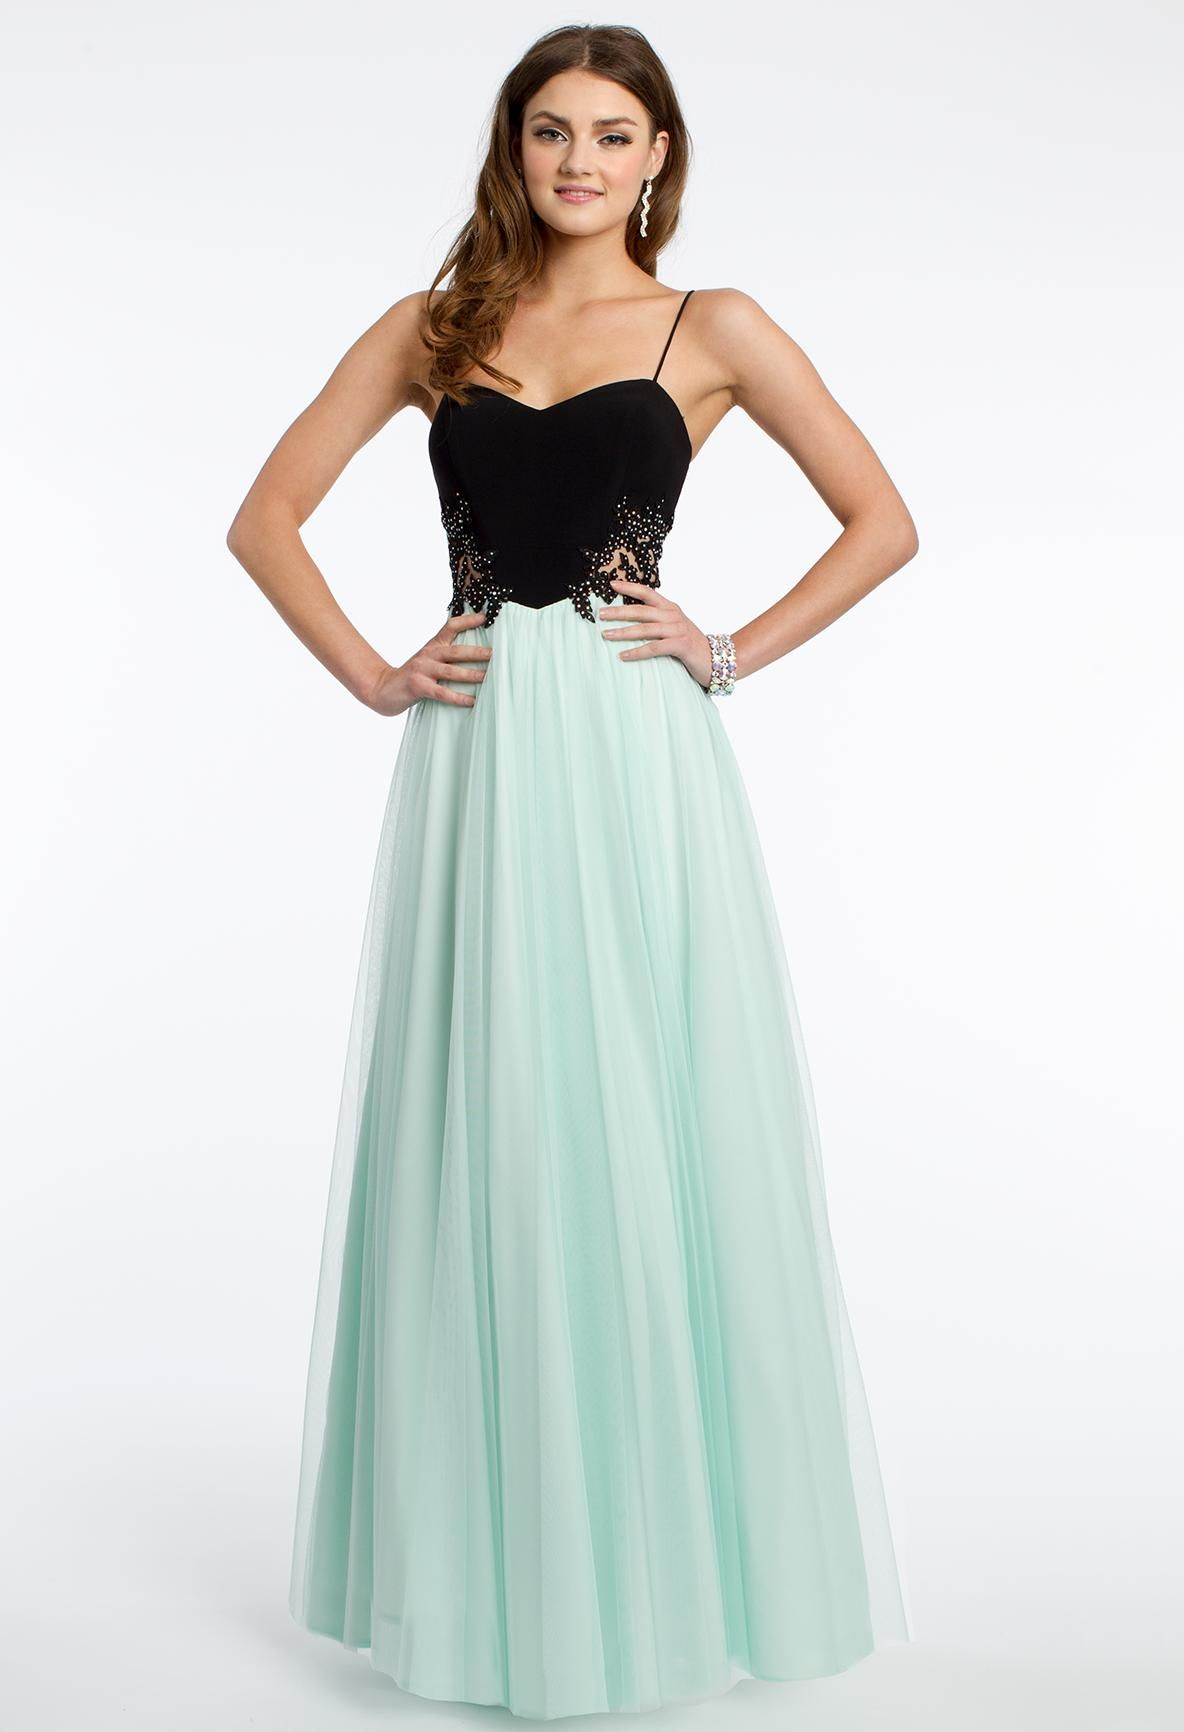 Two-Toned Tulle Dress | Tulle prom dress, Prom and Tulle dress